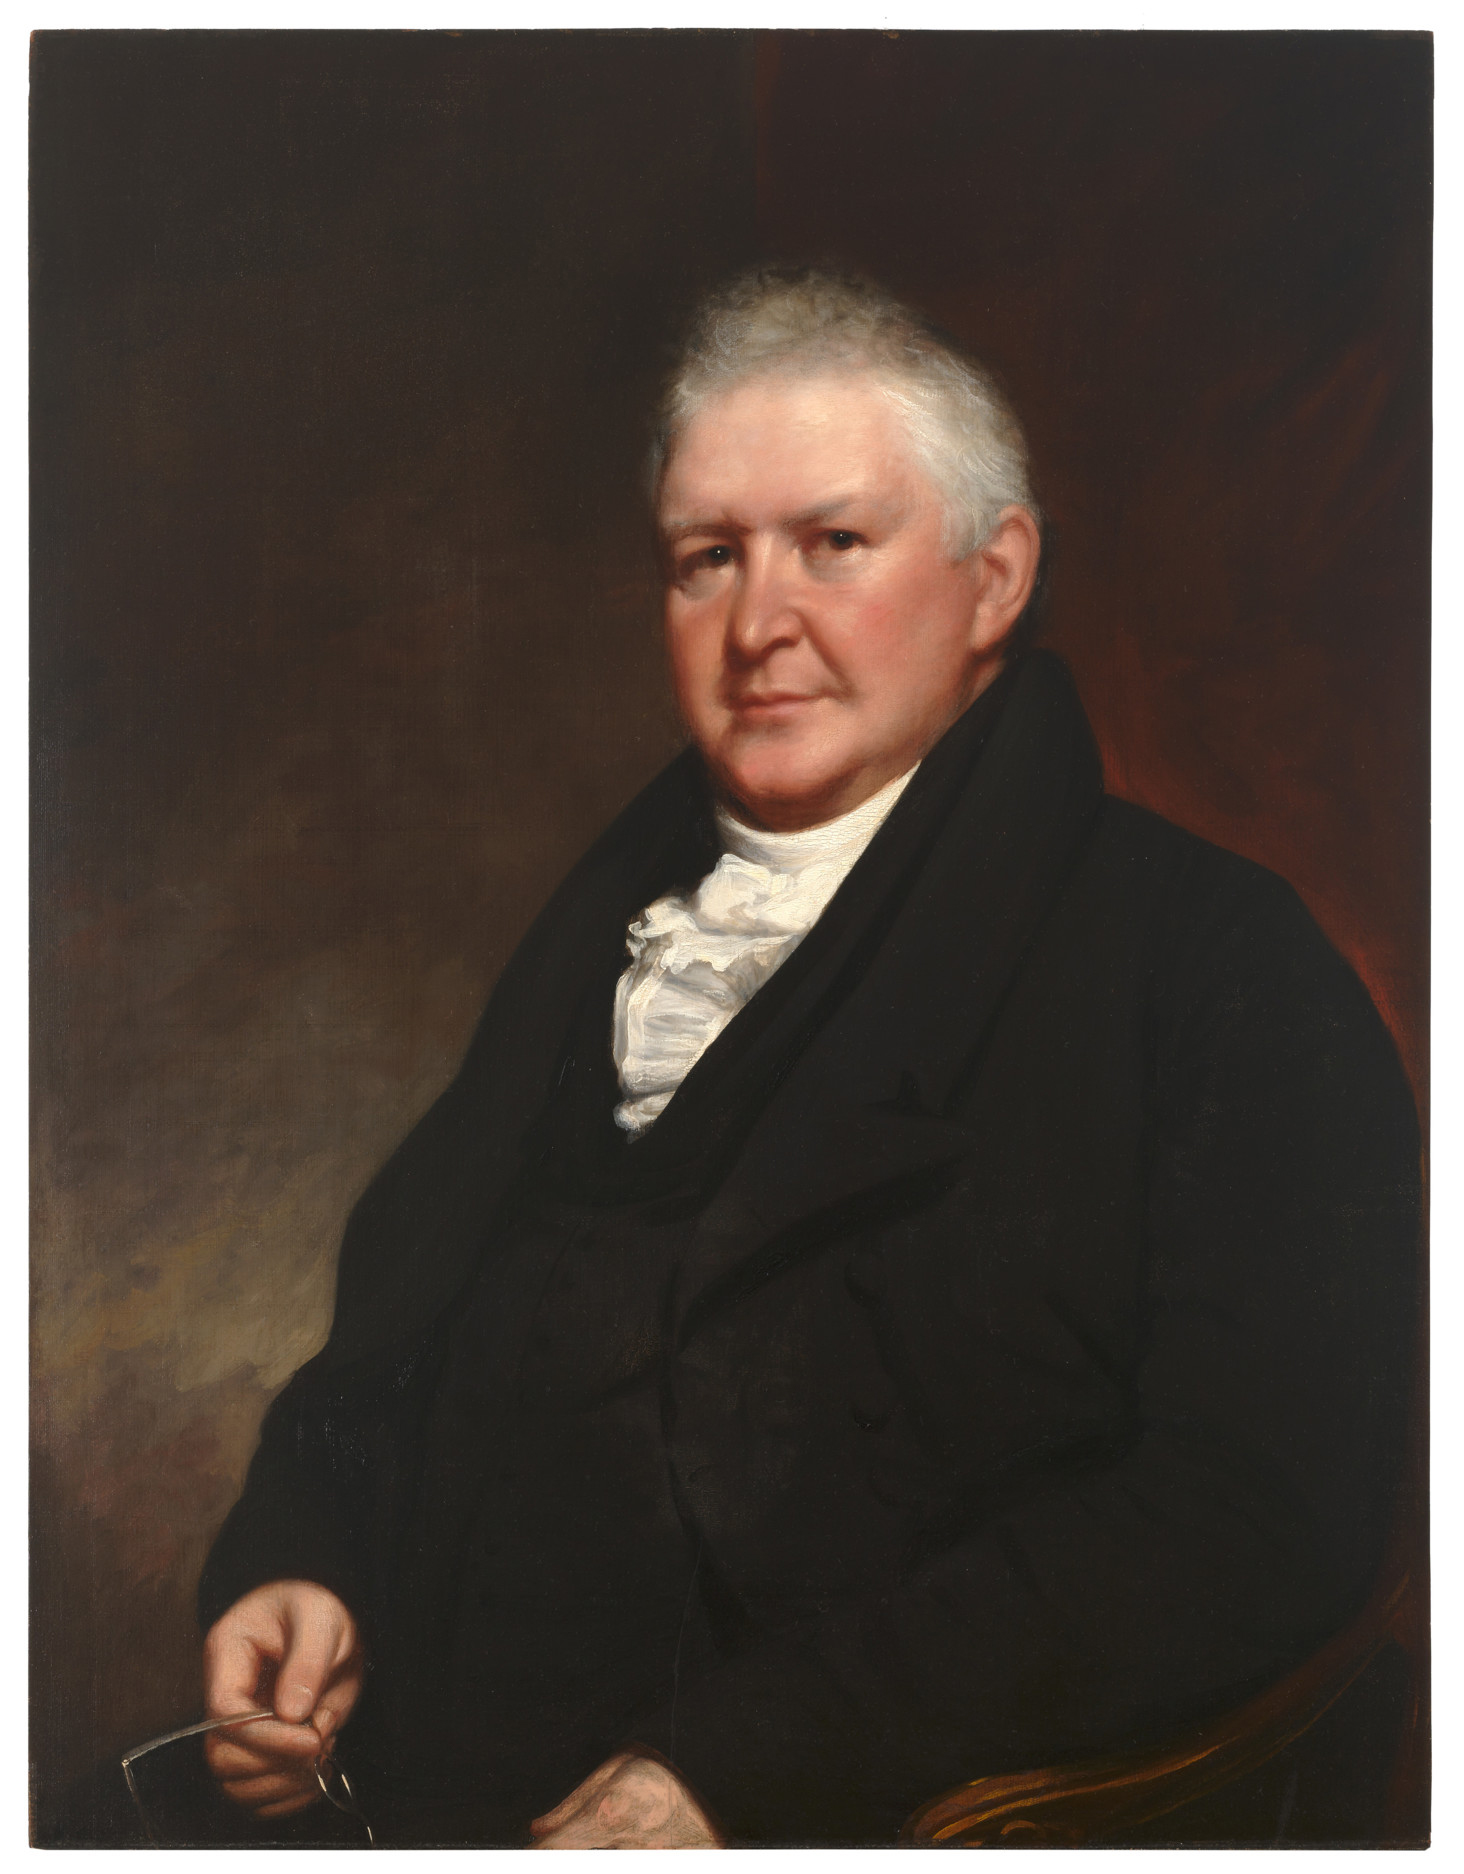 Waldo & Jewett (American ; 1783-1874), Portrait of Edward Dorr Griffin (1770-1837), Third President of Williams College 1821-36, Professor 1808-22, ca. 1821. Oil on panel, 32 11/16 x 25 1/2 in. Museum purchase, with funds provided by an anonymous donor. (86.25.1)